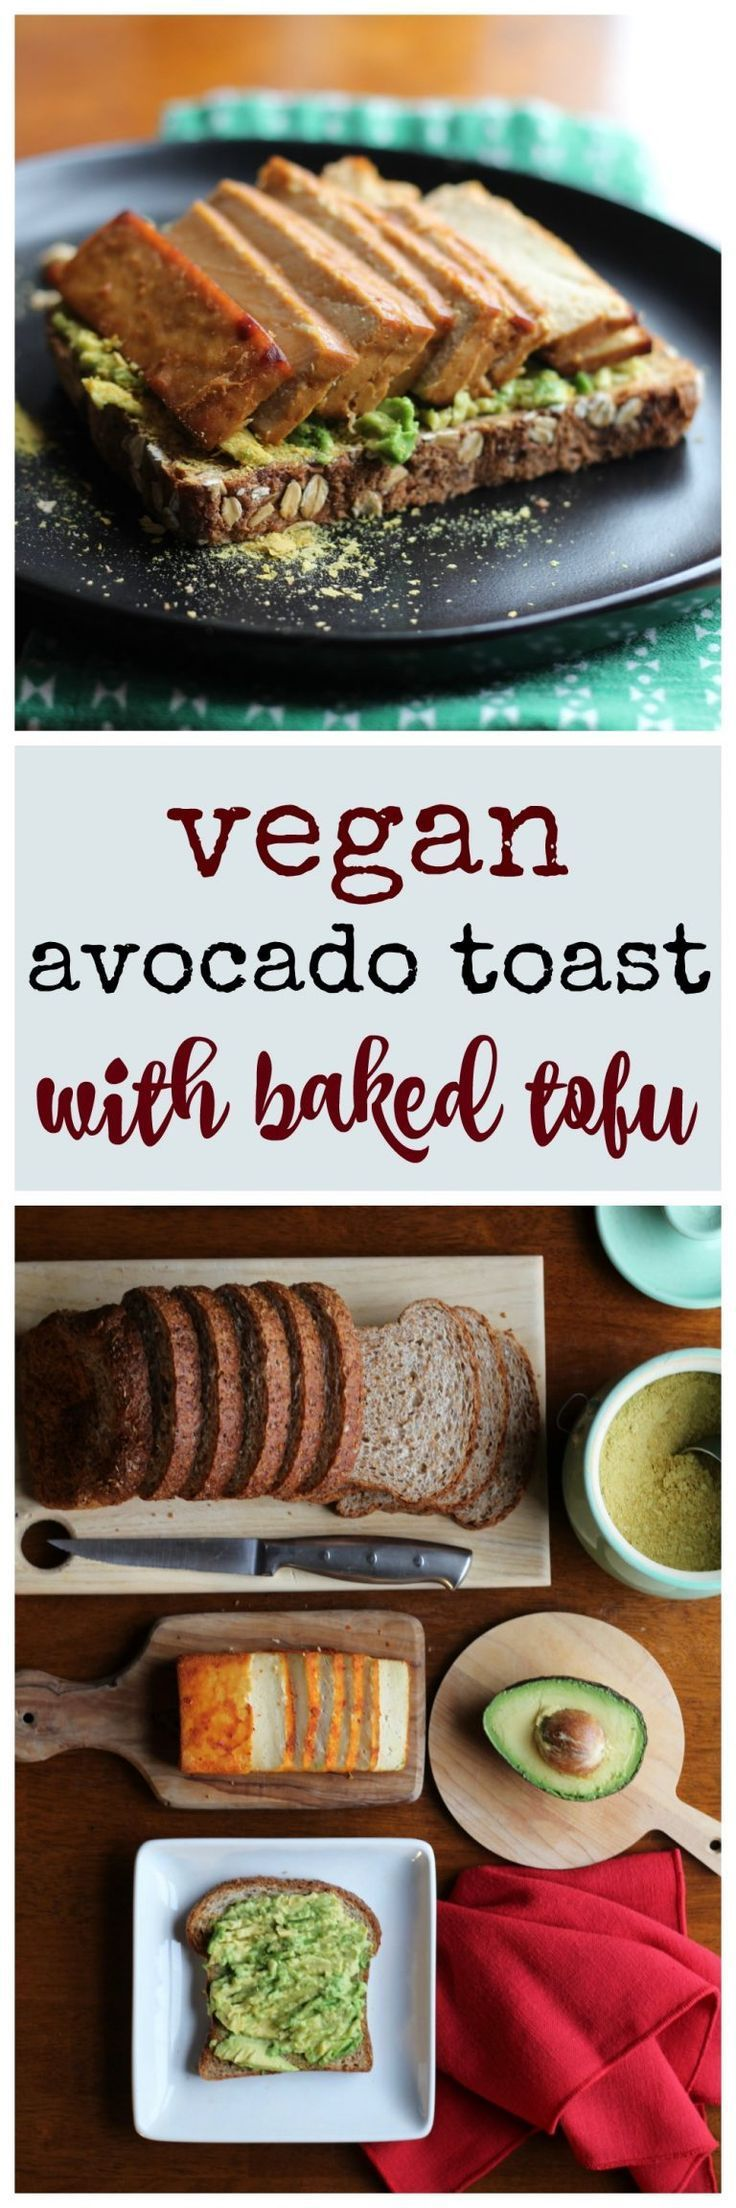 This simple vegan avocado toast recipe includes baked tofu and a sprinkling of nutritional yeast flakes. Save time by using packaged baked tofu. Teriyaki tofu & sriracha tofu are particularly good. This delicious start to the day has a hit of protein and fat to keep me going until lunchtime. via @cadryskitchen #NutritionalYeast